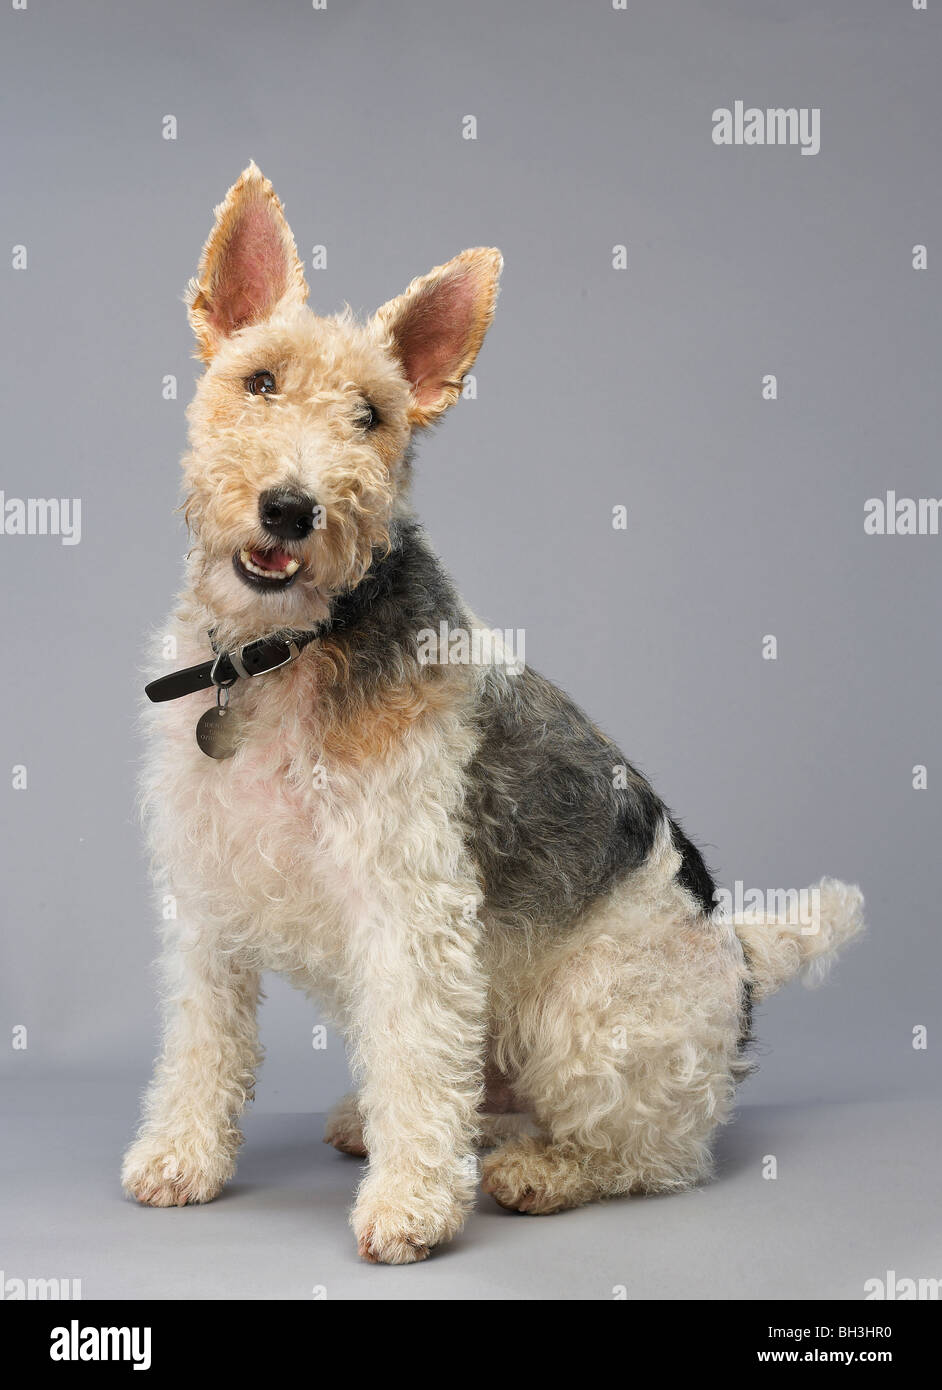 Fox Terrier Stock Photos & Fox Terrier Stock Images - Alamy